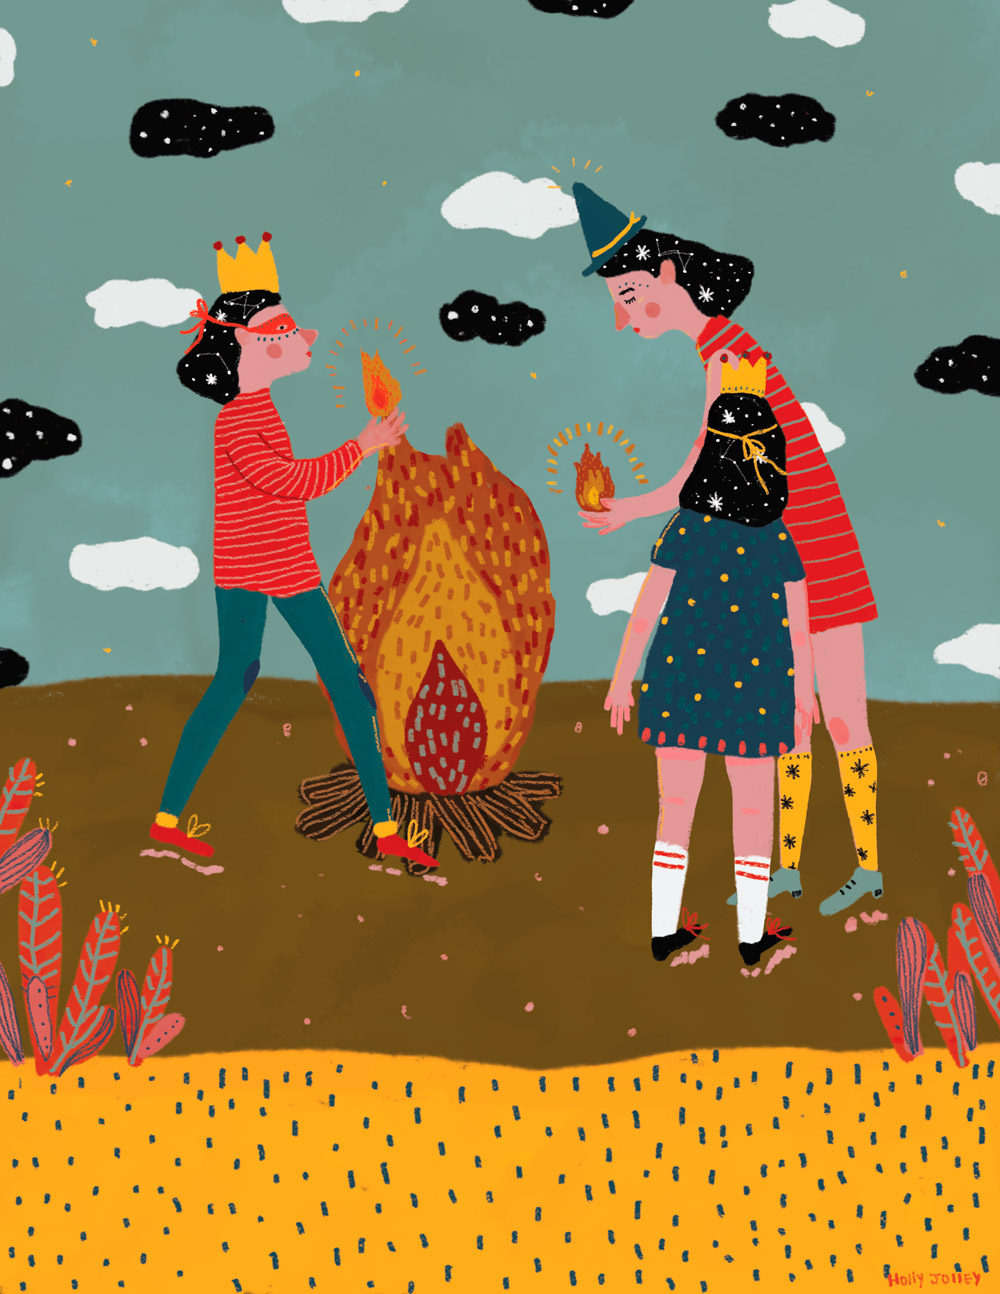 Ilustracion de Holly Jolley - Ilustradores chilenos por 2Design Blog